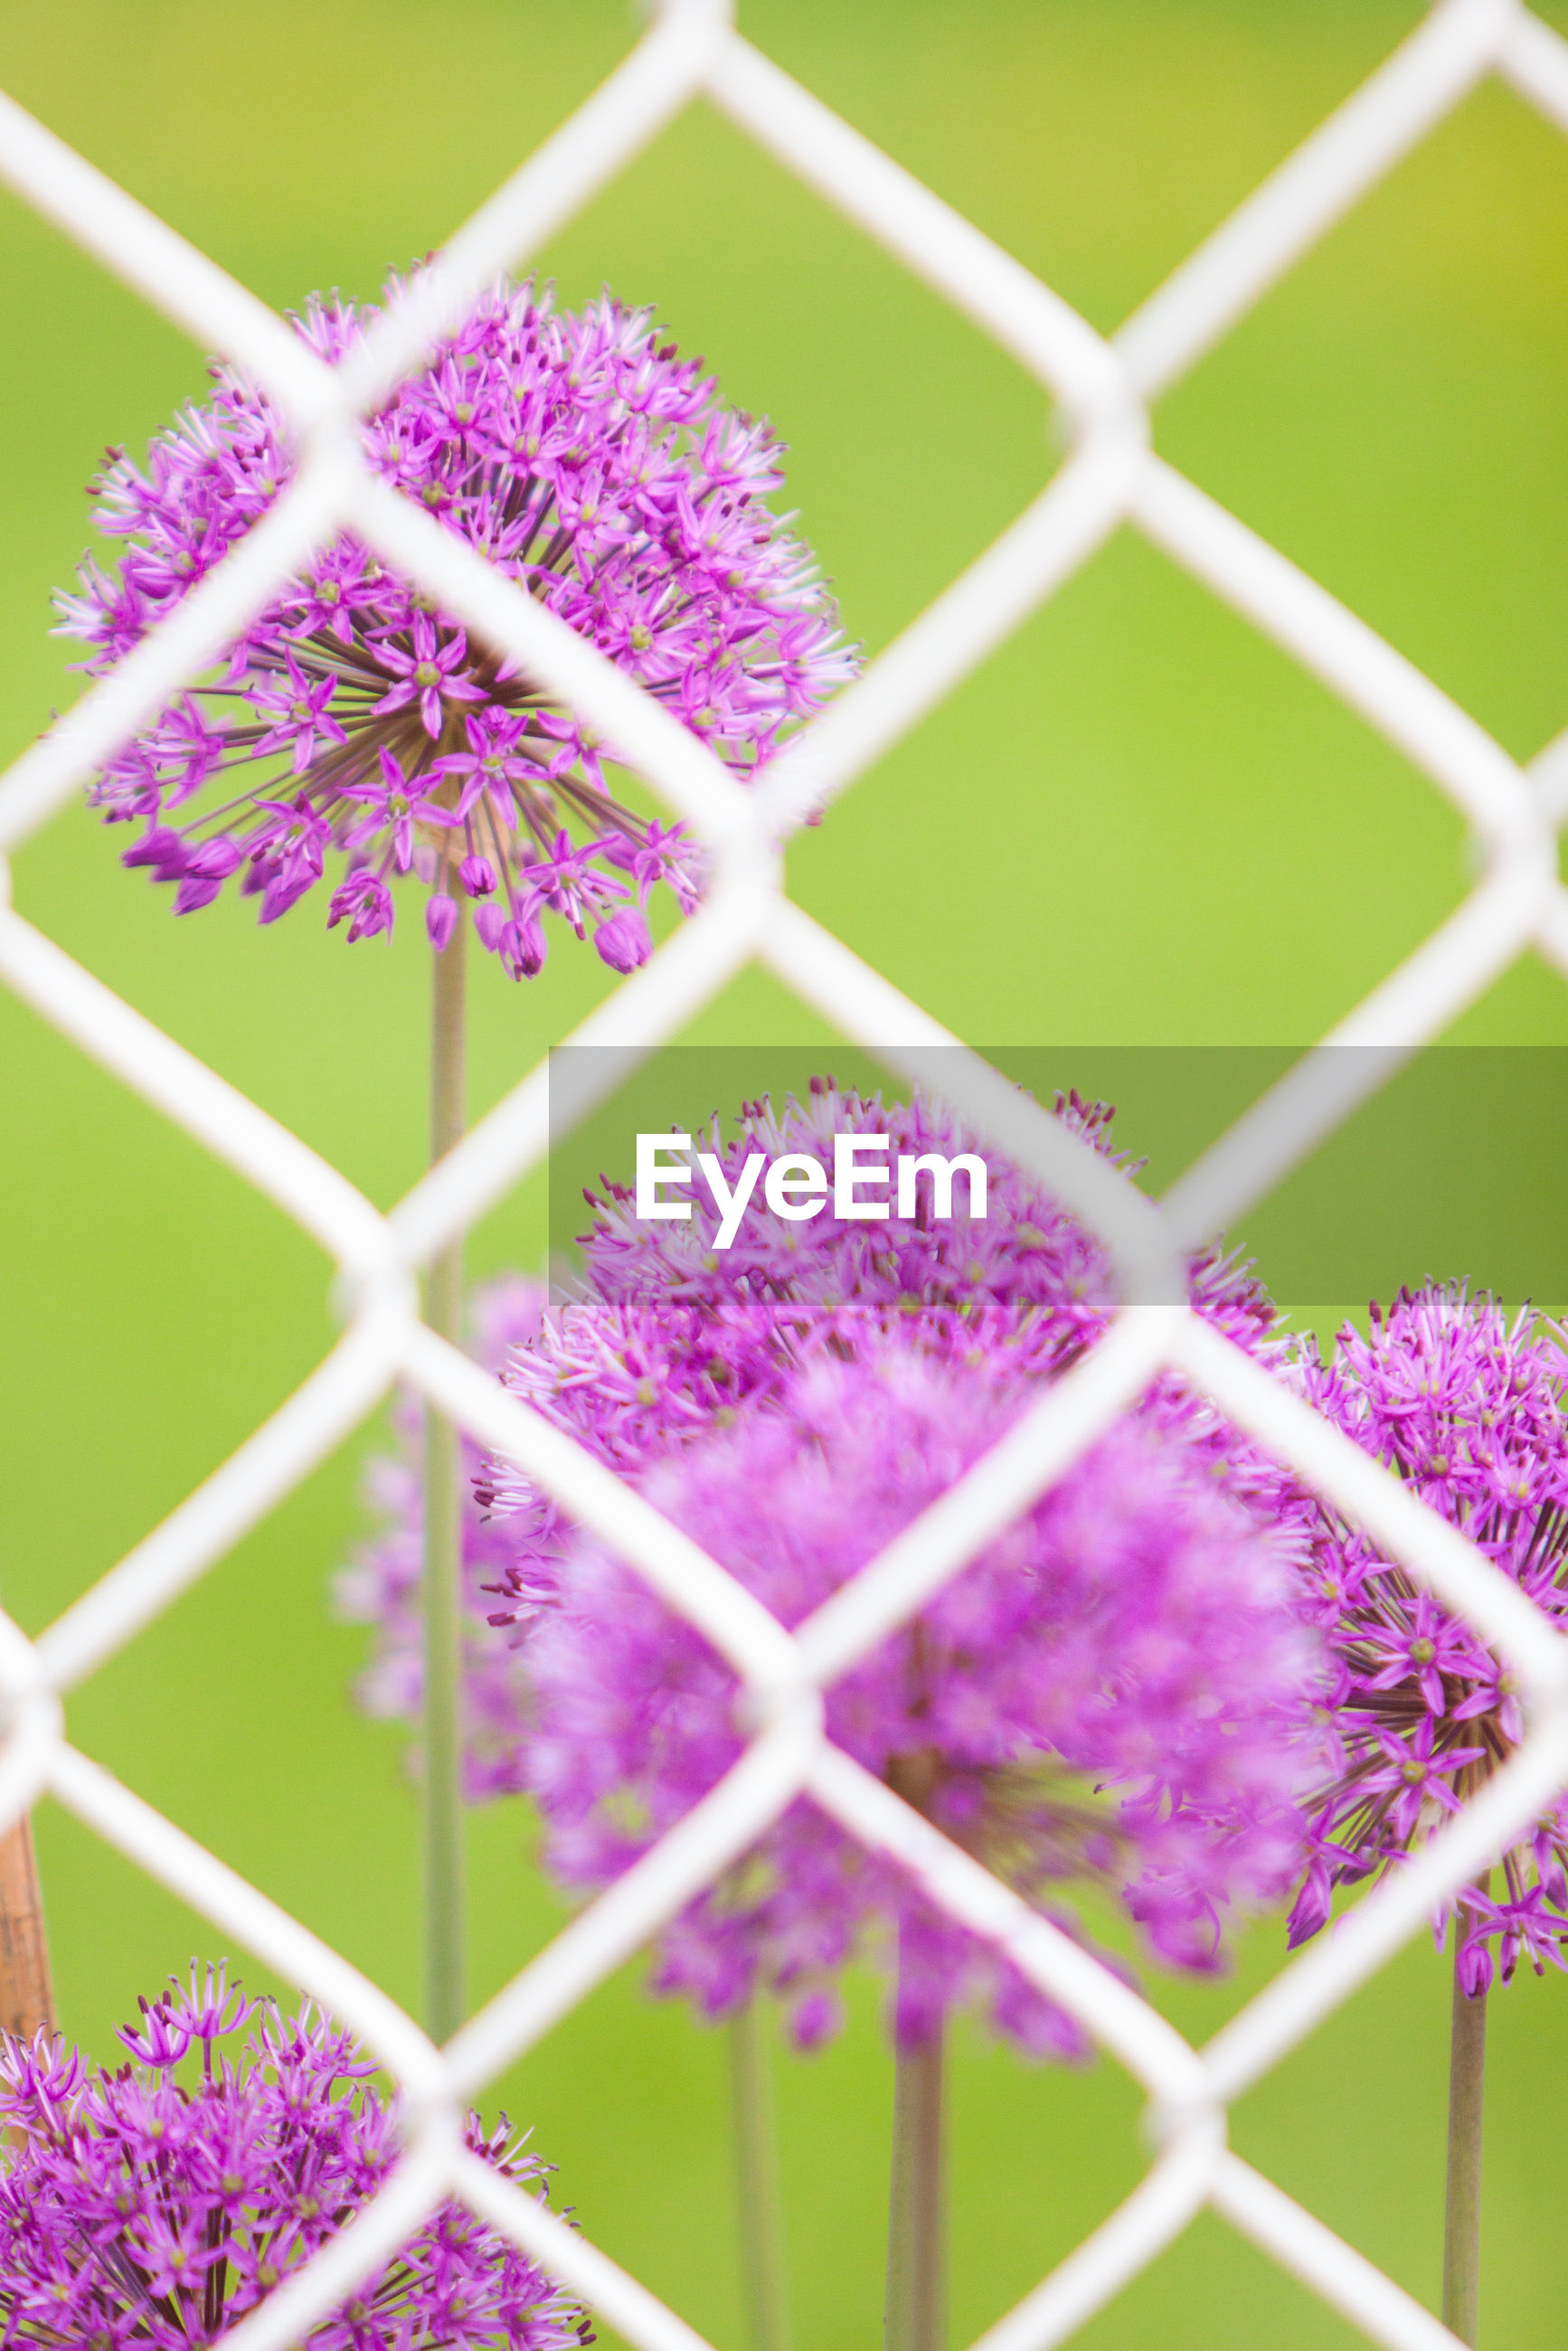 Purple flowers seen through white chainlink fence